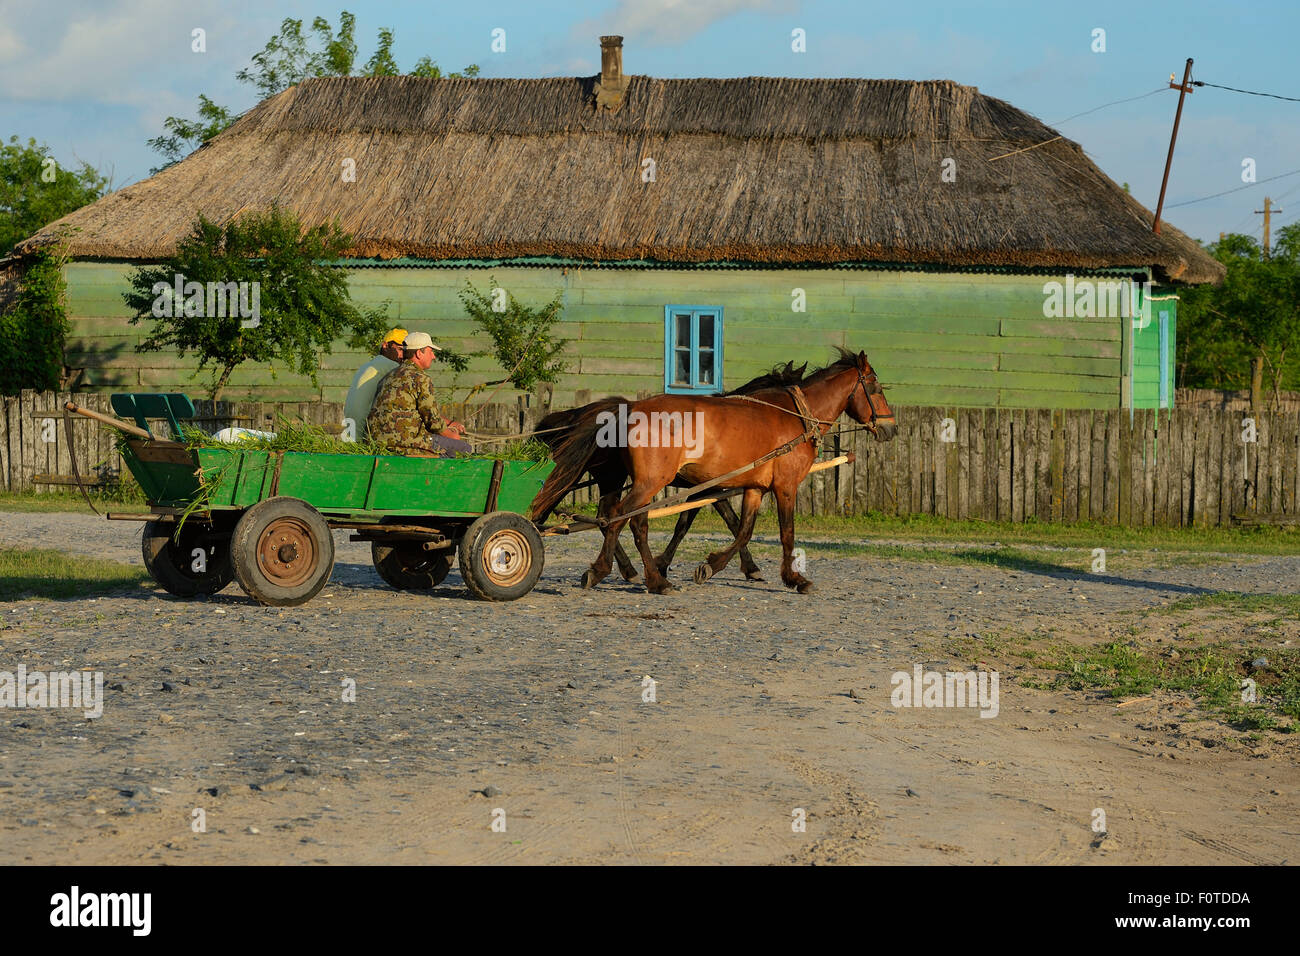 Traditional means of transport, horse and cart, Letea, Danube delta rewilding area, Romania May 2012 - Stock Image